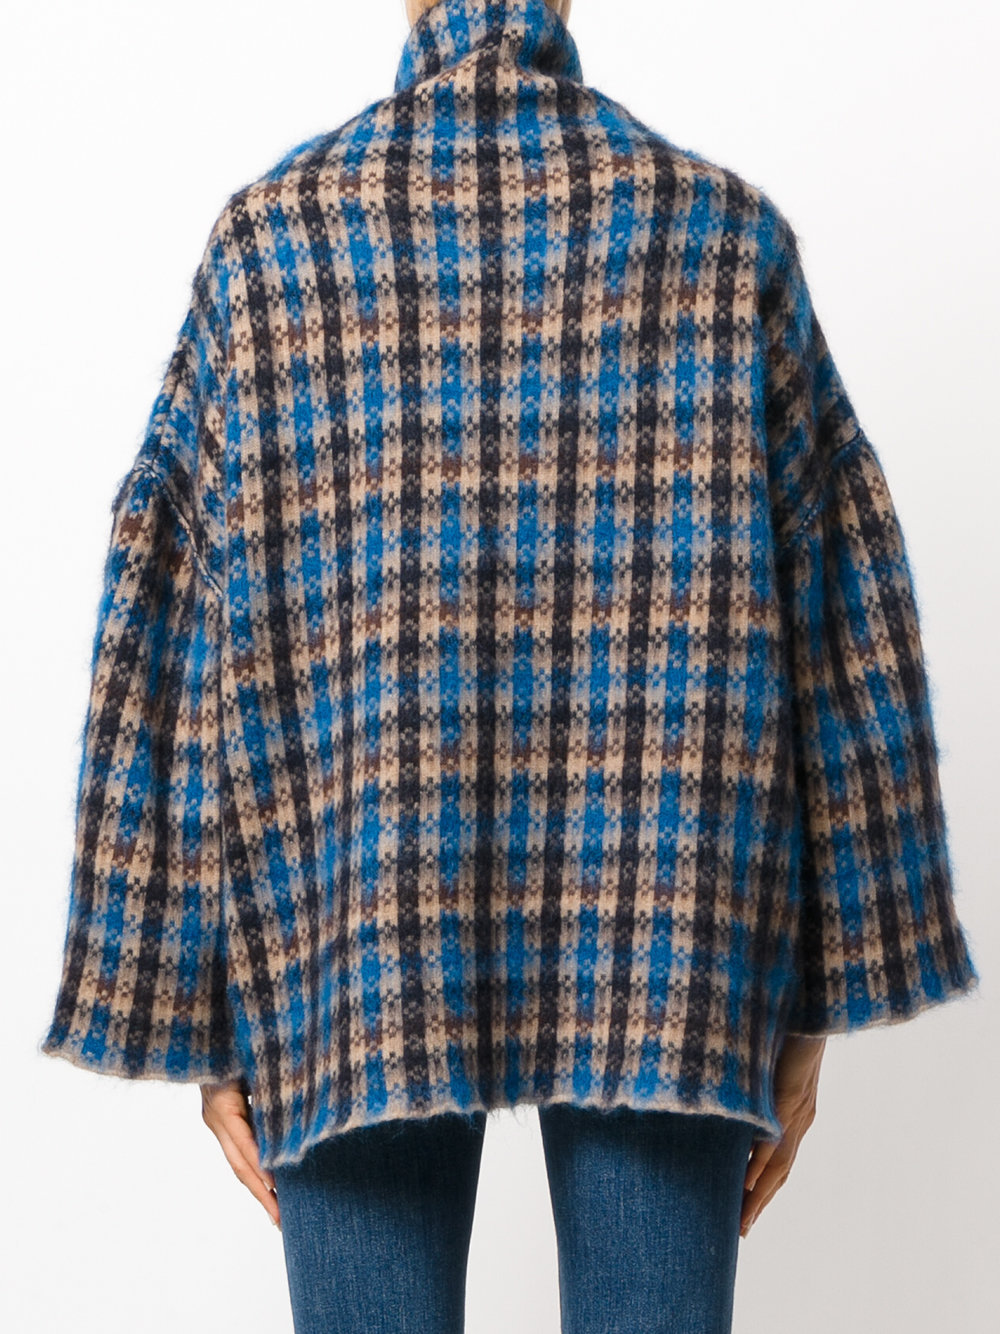 17-18AW SM381 CHECKED WOOL & MOHAIR BLEND OVERSIZED SWEATER